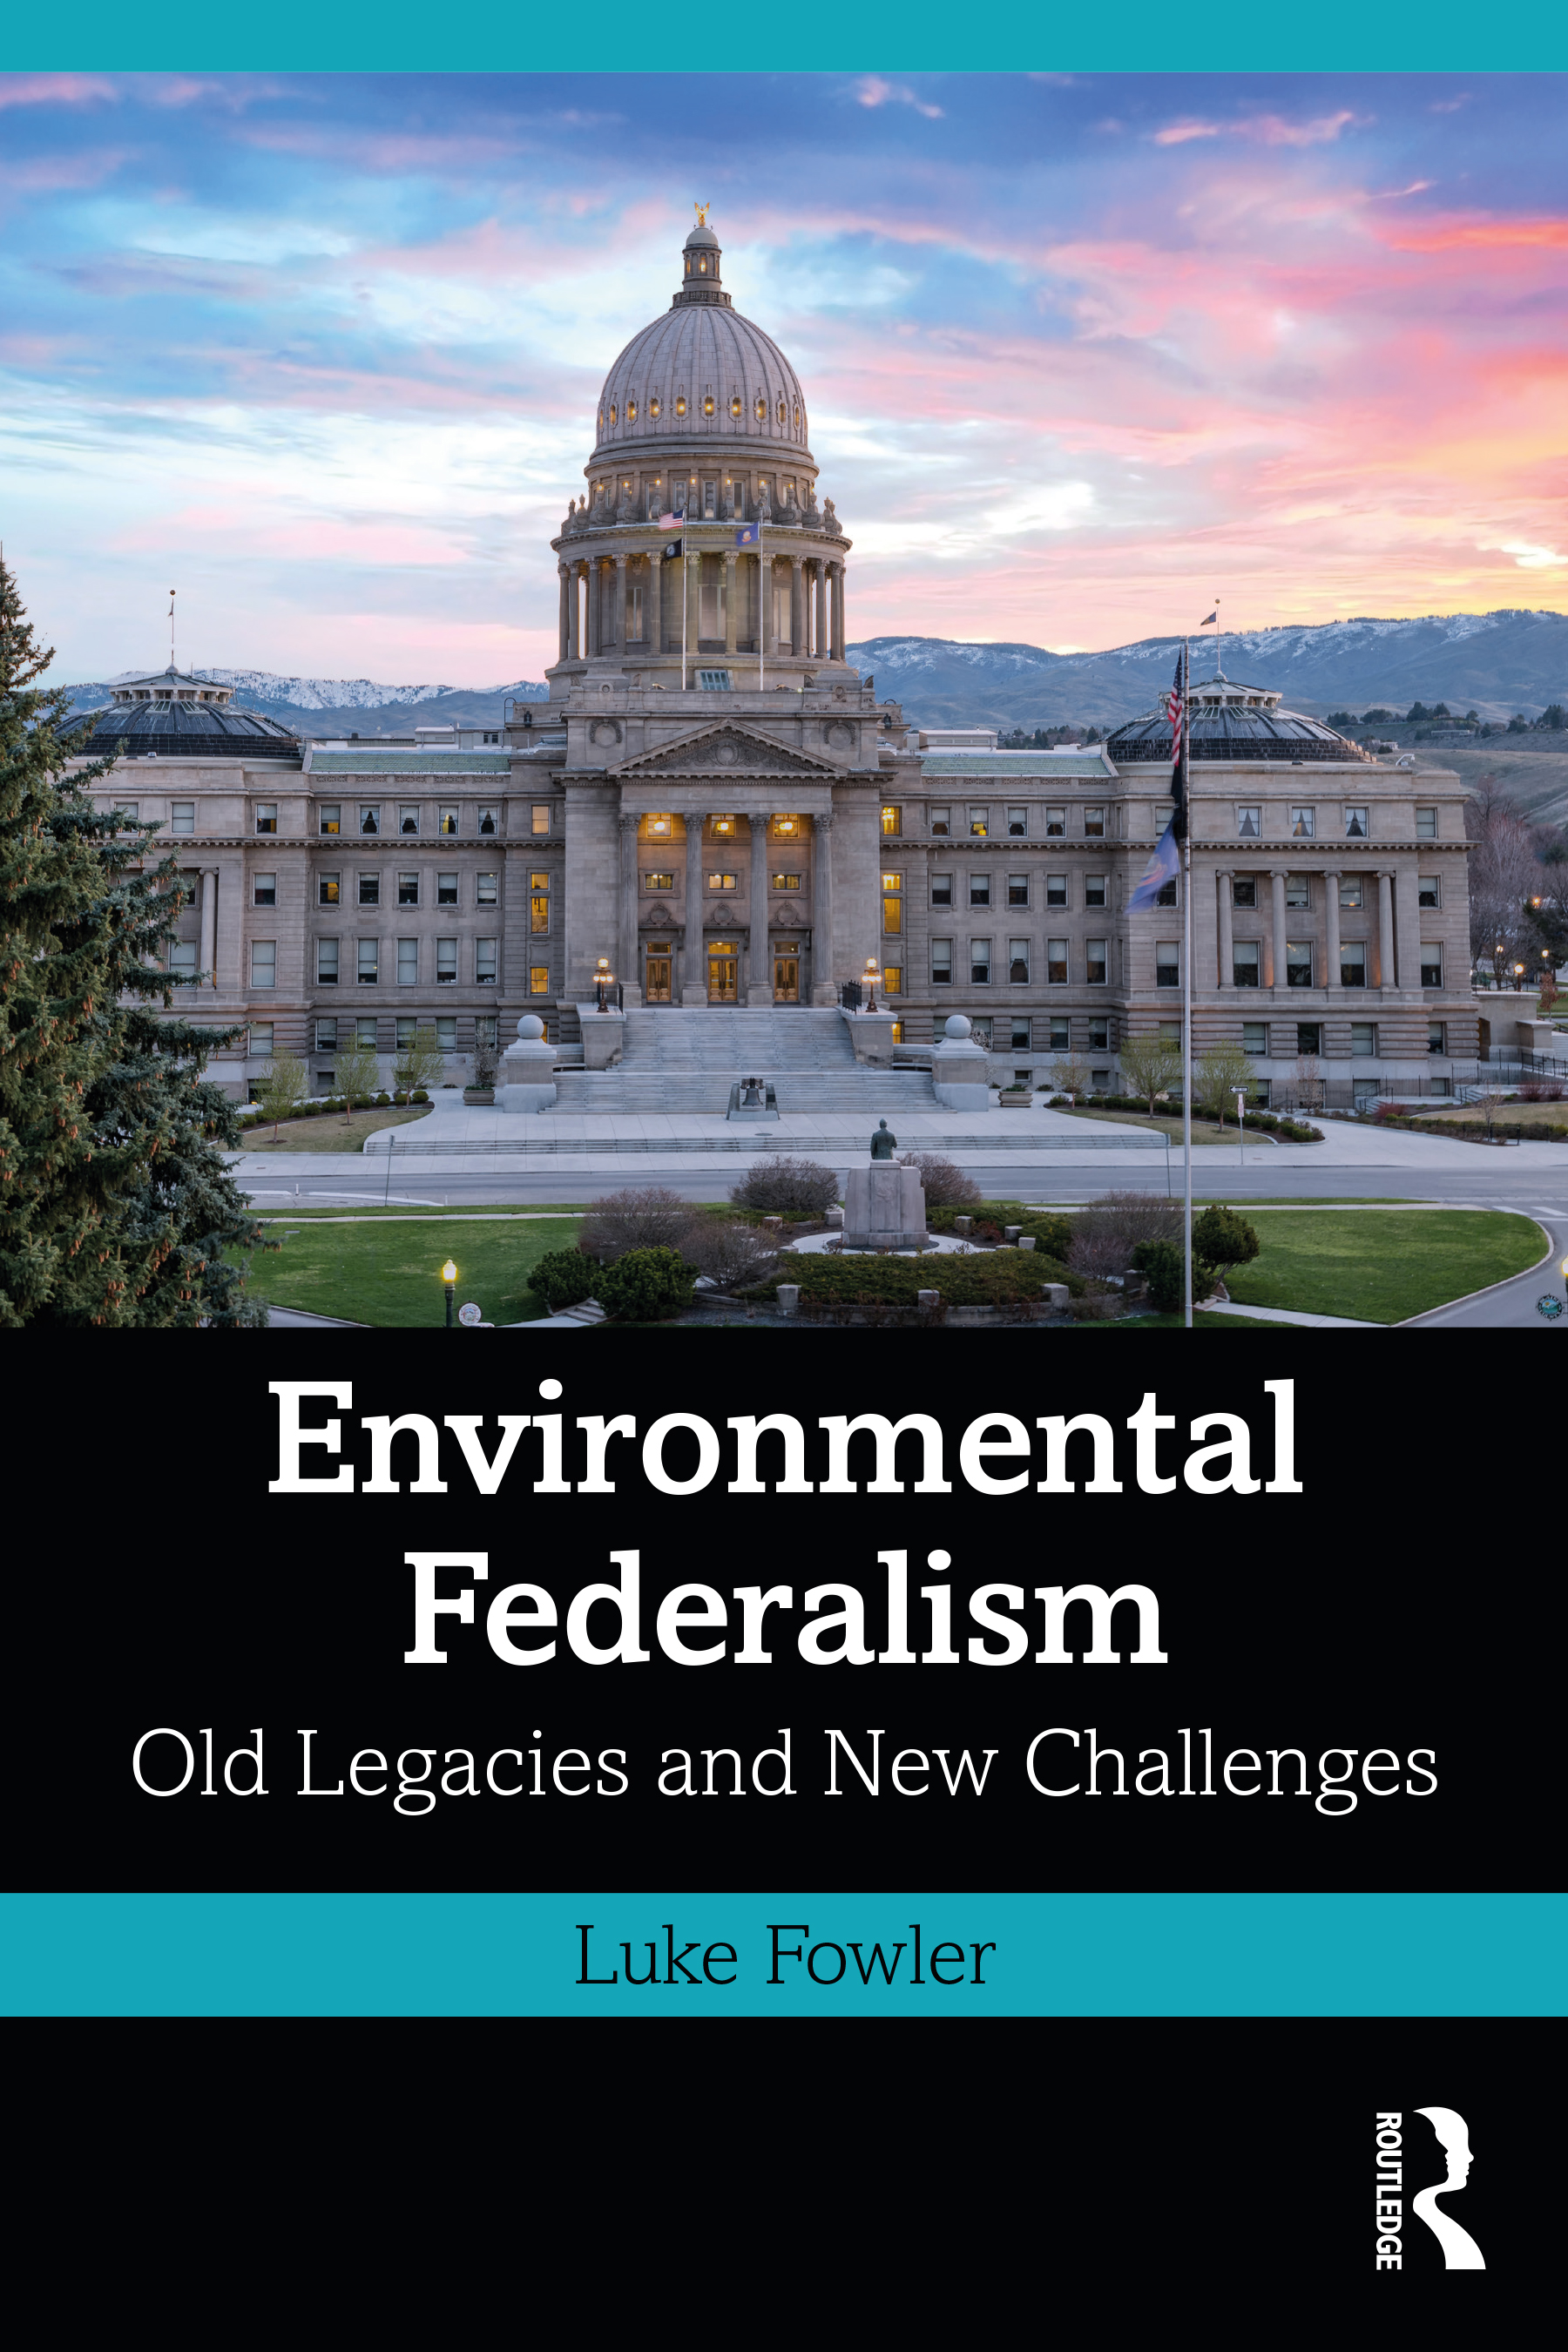 Environmental Federalism: Old Legacies and New Challenges book cover